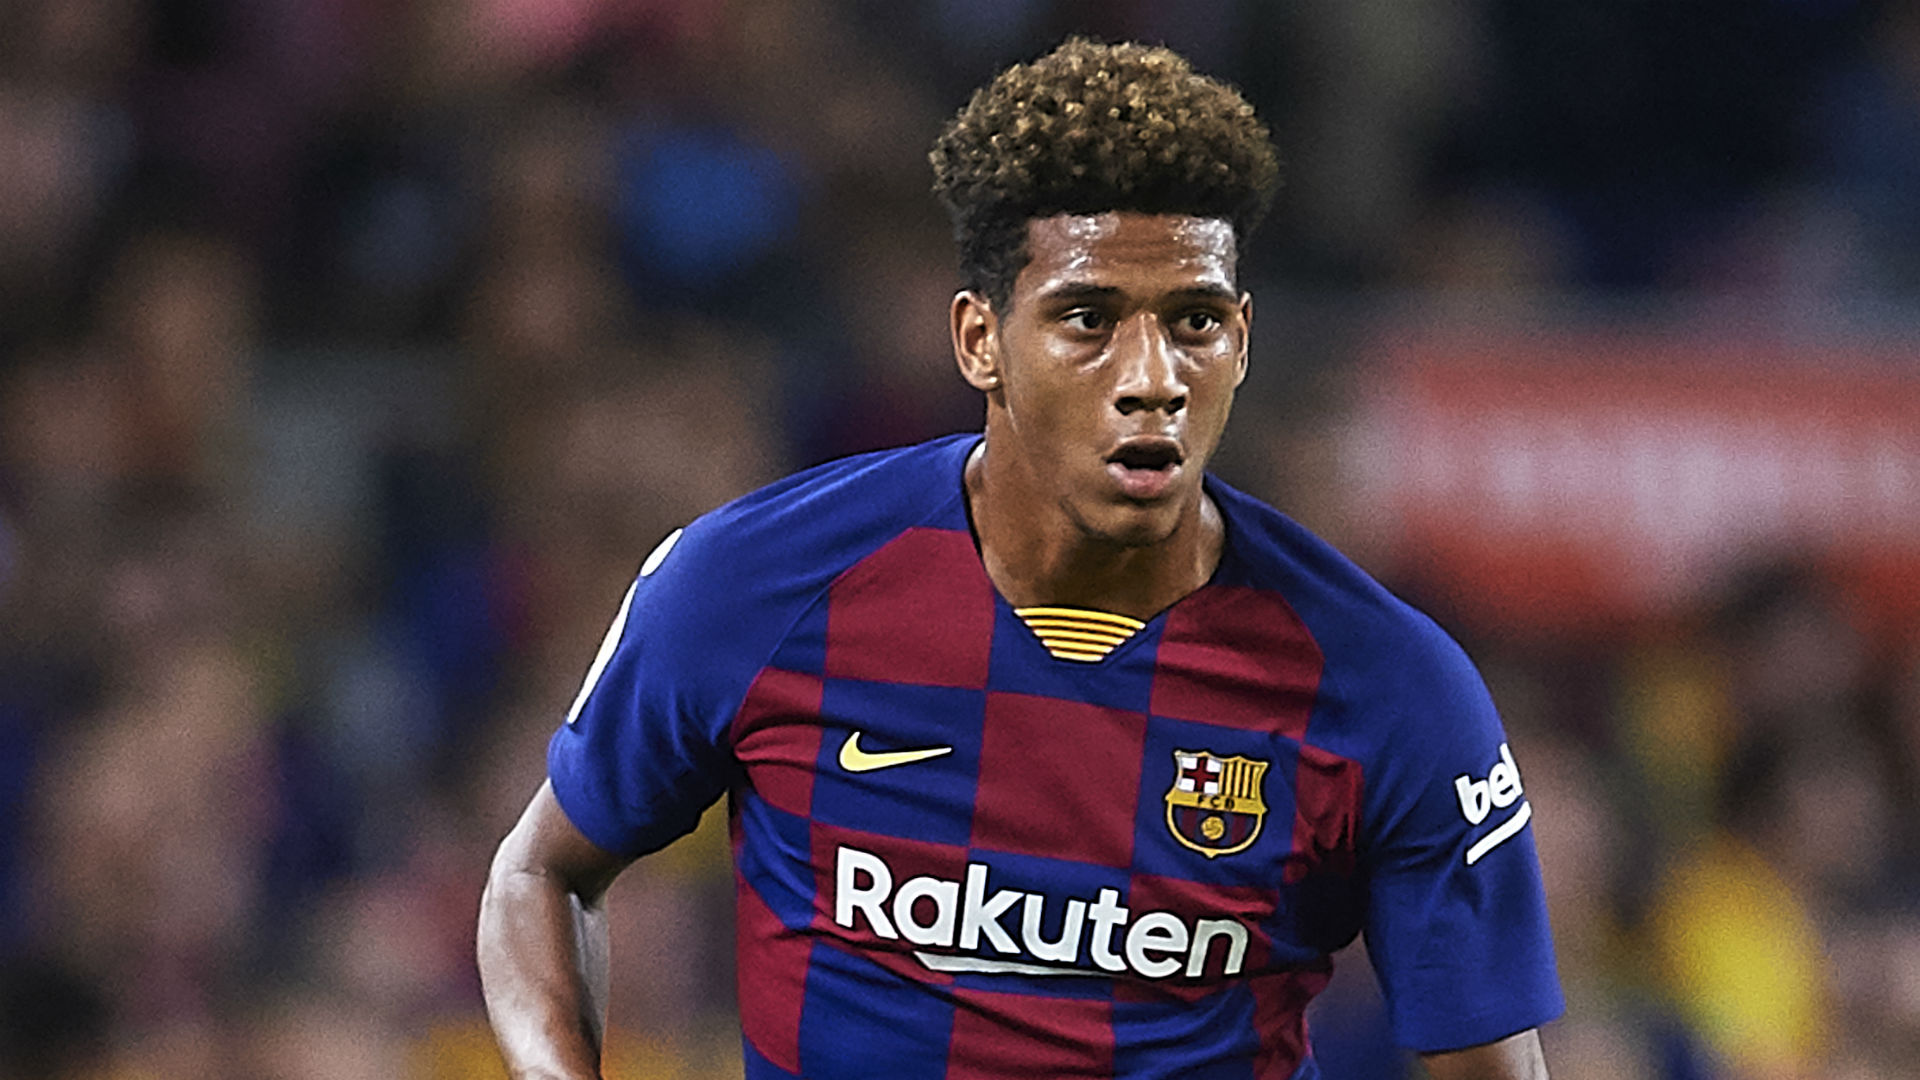 Barcelona defender Todibo joins Schalke on loan with €25m purchase option